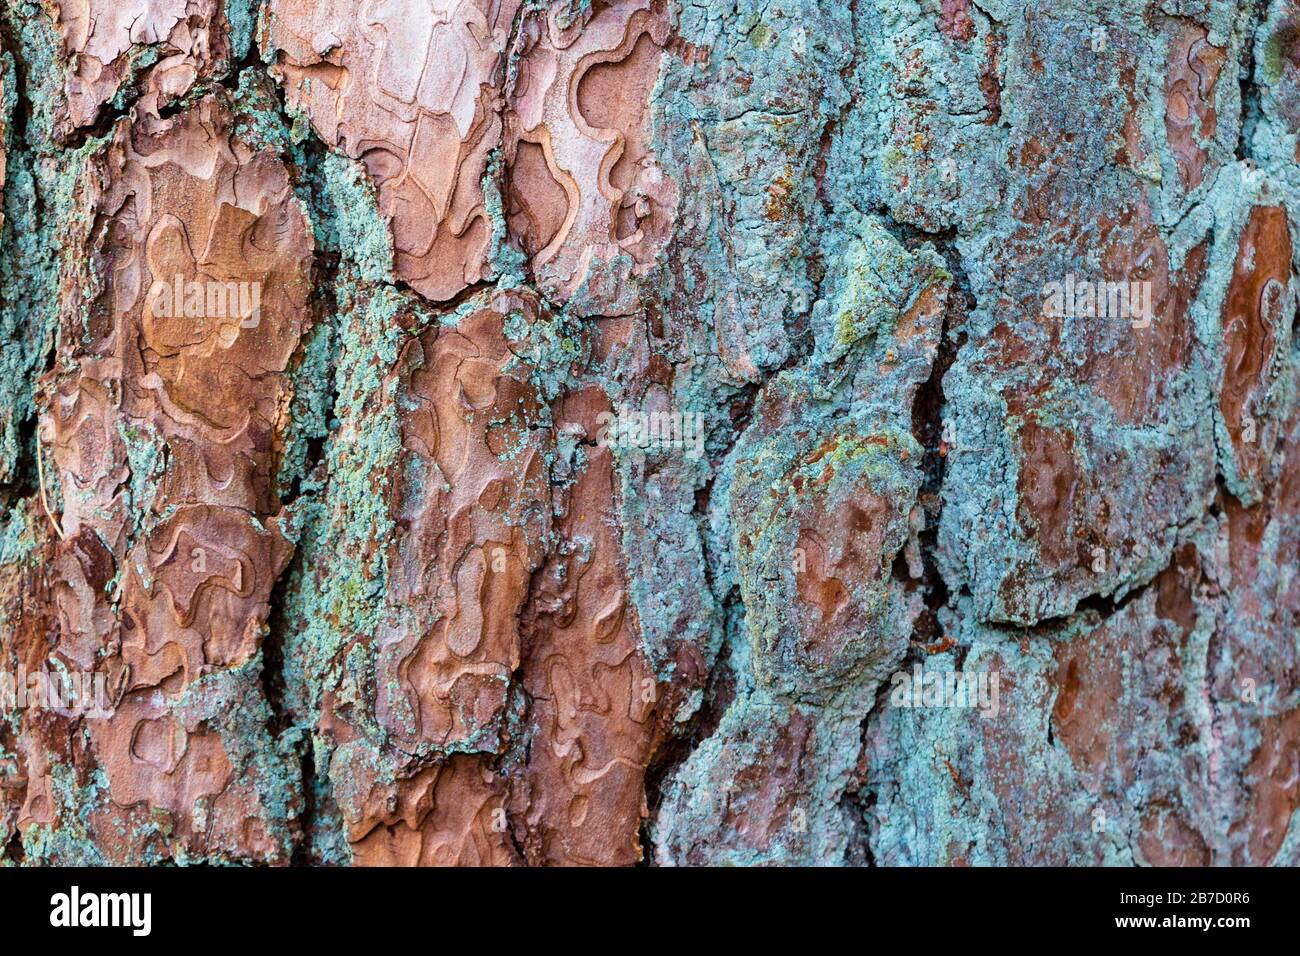 pattern of coarse tree bark with green blue and brown colors, beautiful as a background or backdrop in your photo Stock Photo